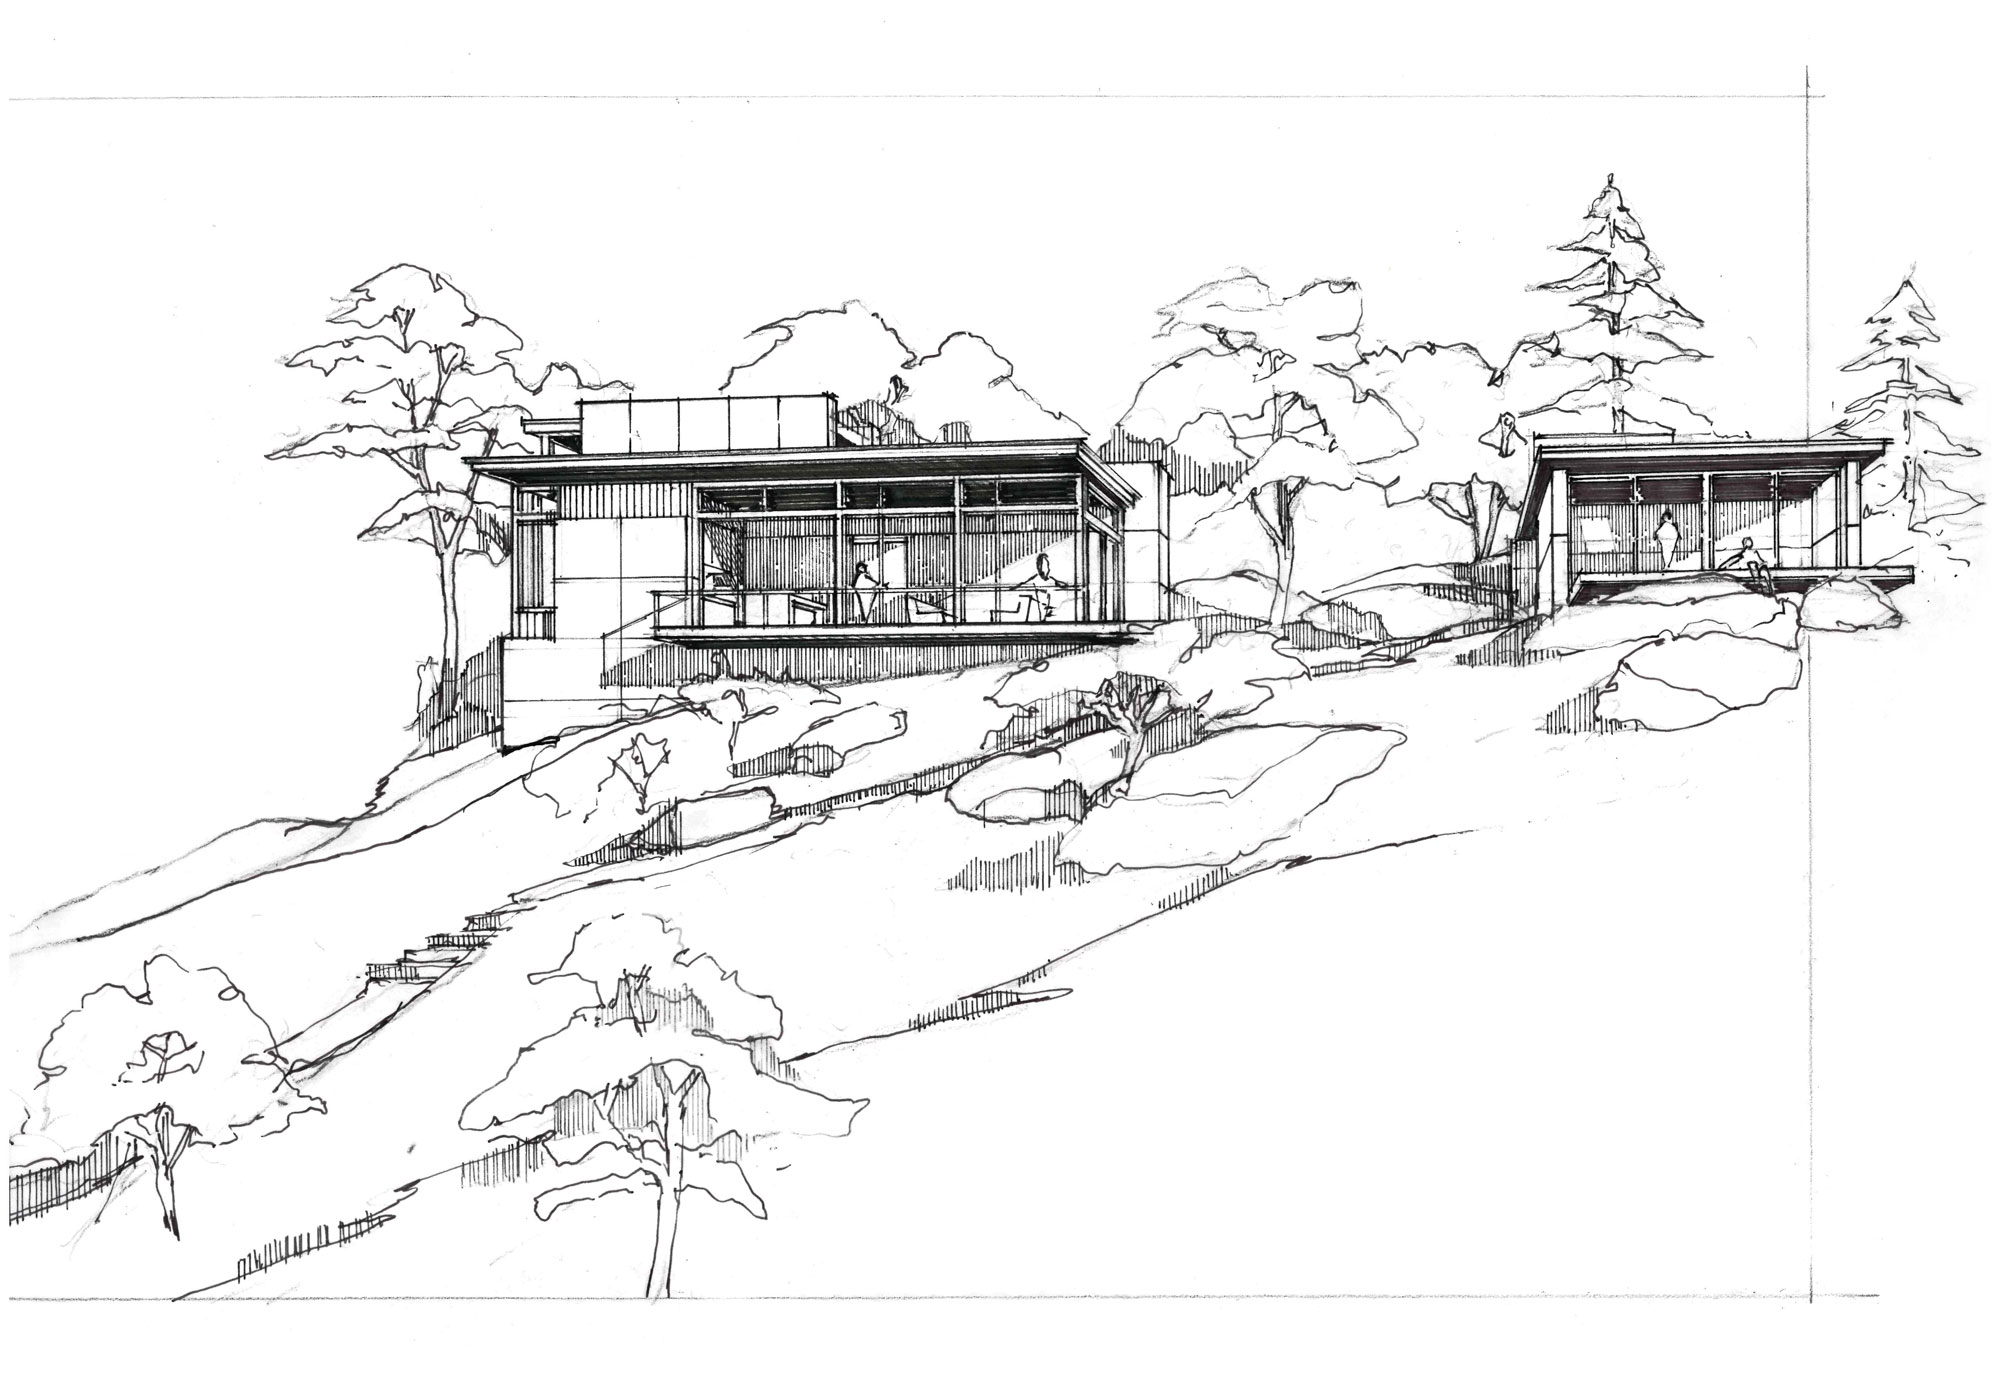 hand sketch of rear elevation of home with studio